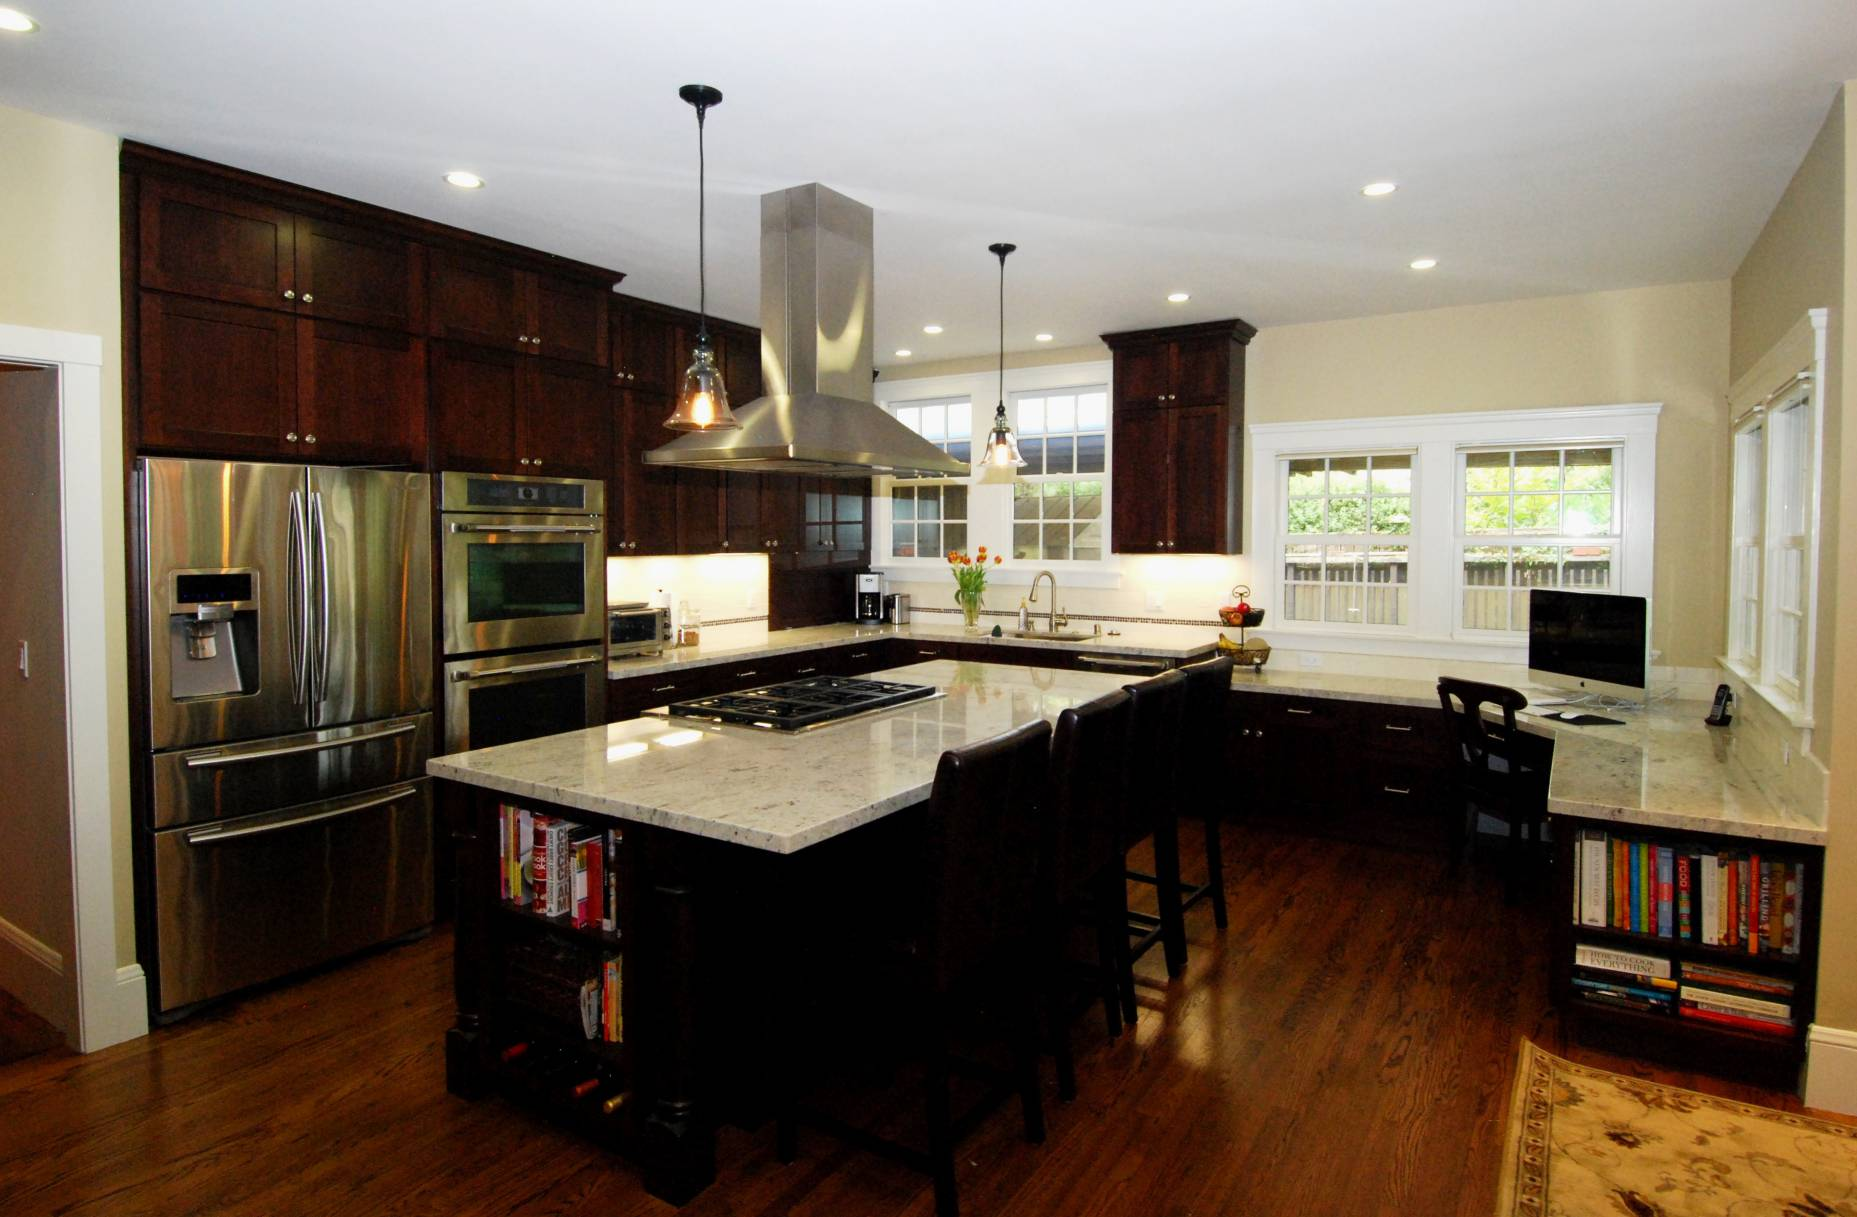 Kitchen with wood floors, Architect work, Interior design work, Palo Alto